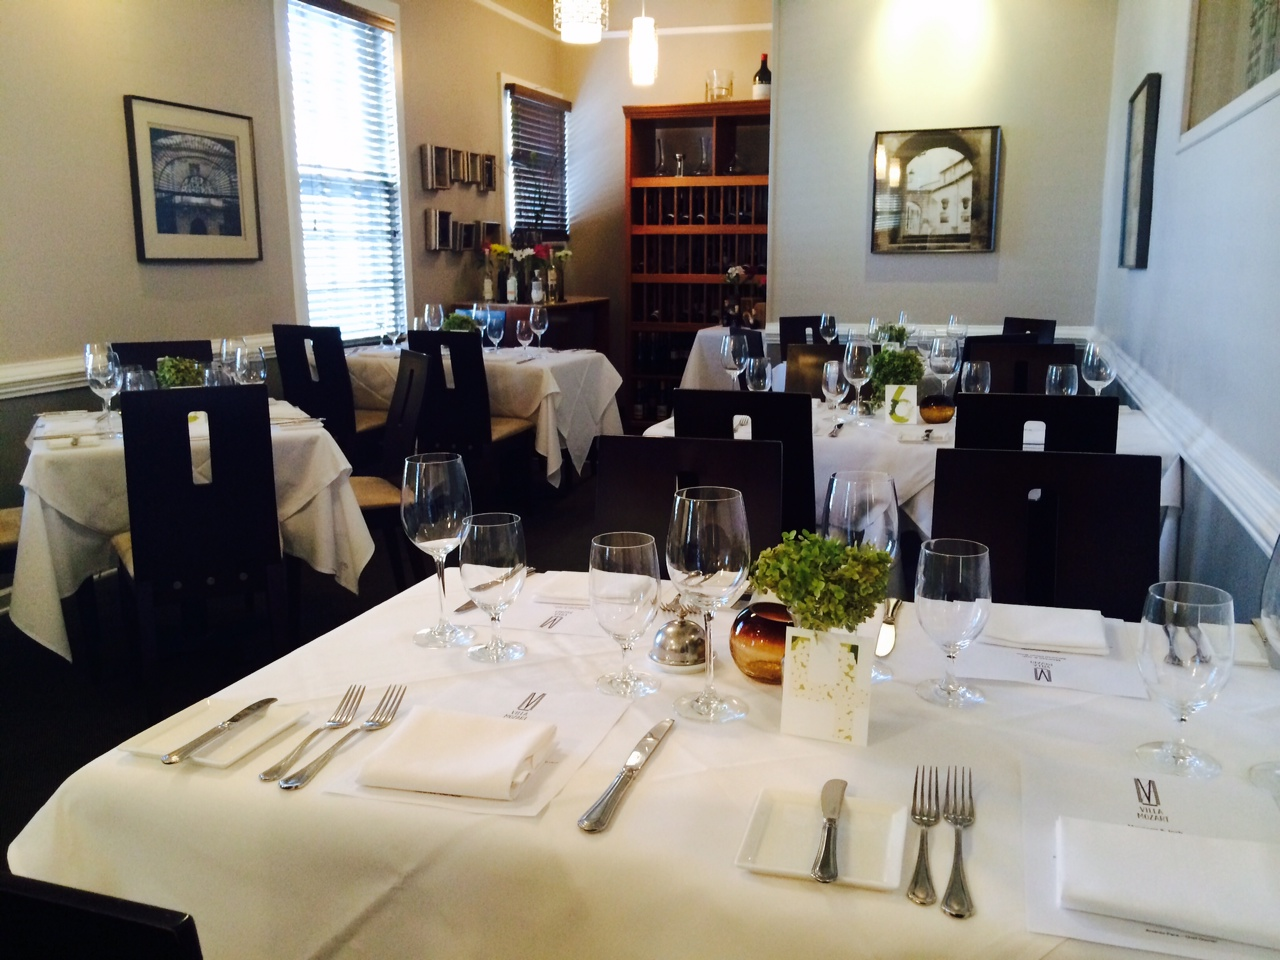 Main Dining Room event space at Villa Mozart Restaurant in Washington DC, Maryland, Virginia, DC Area